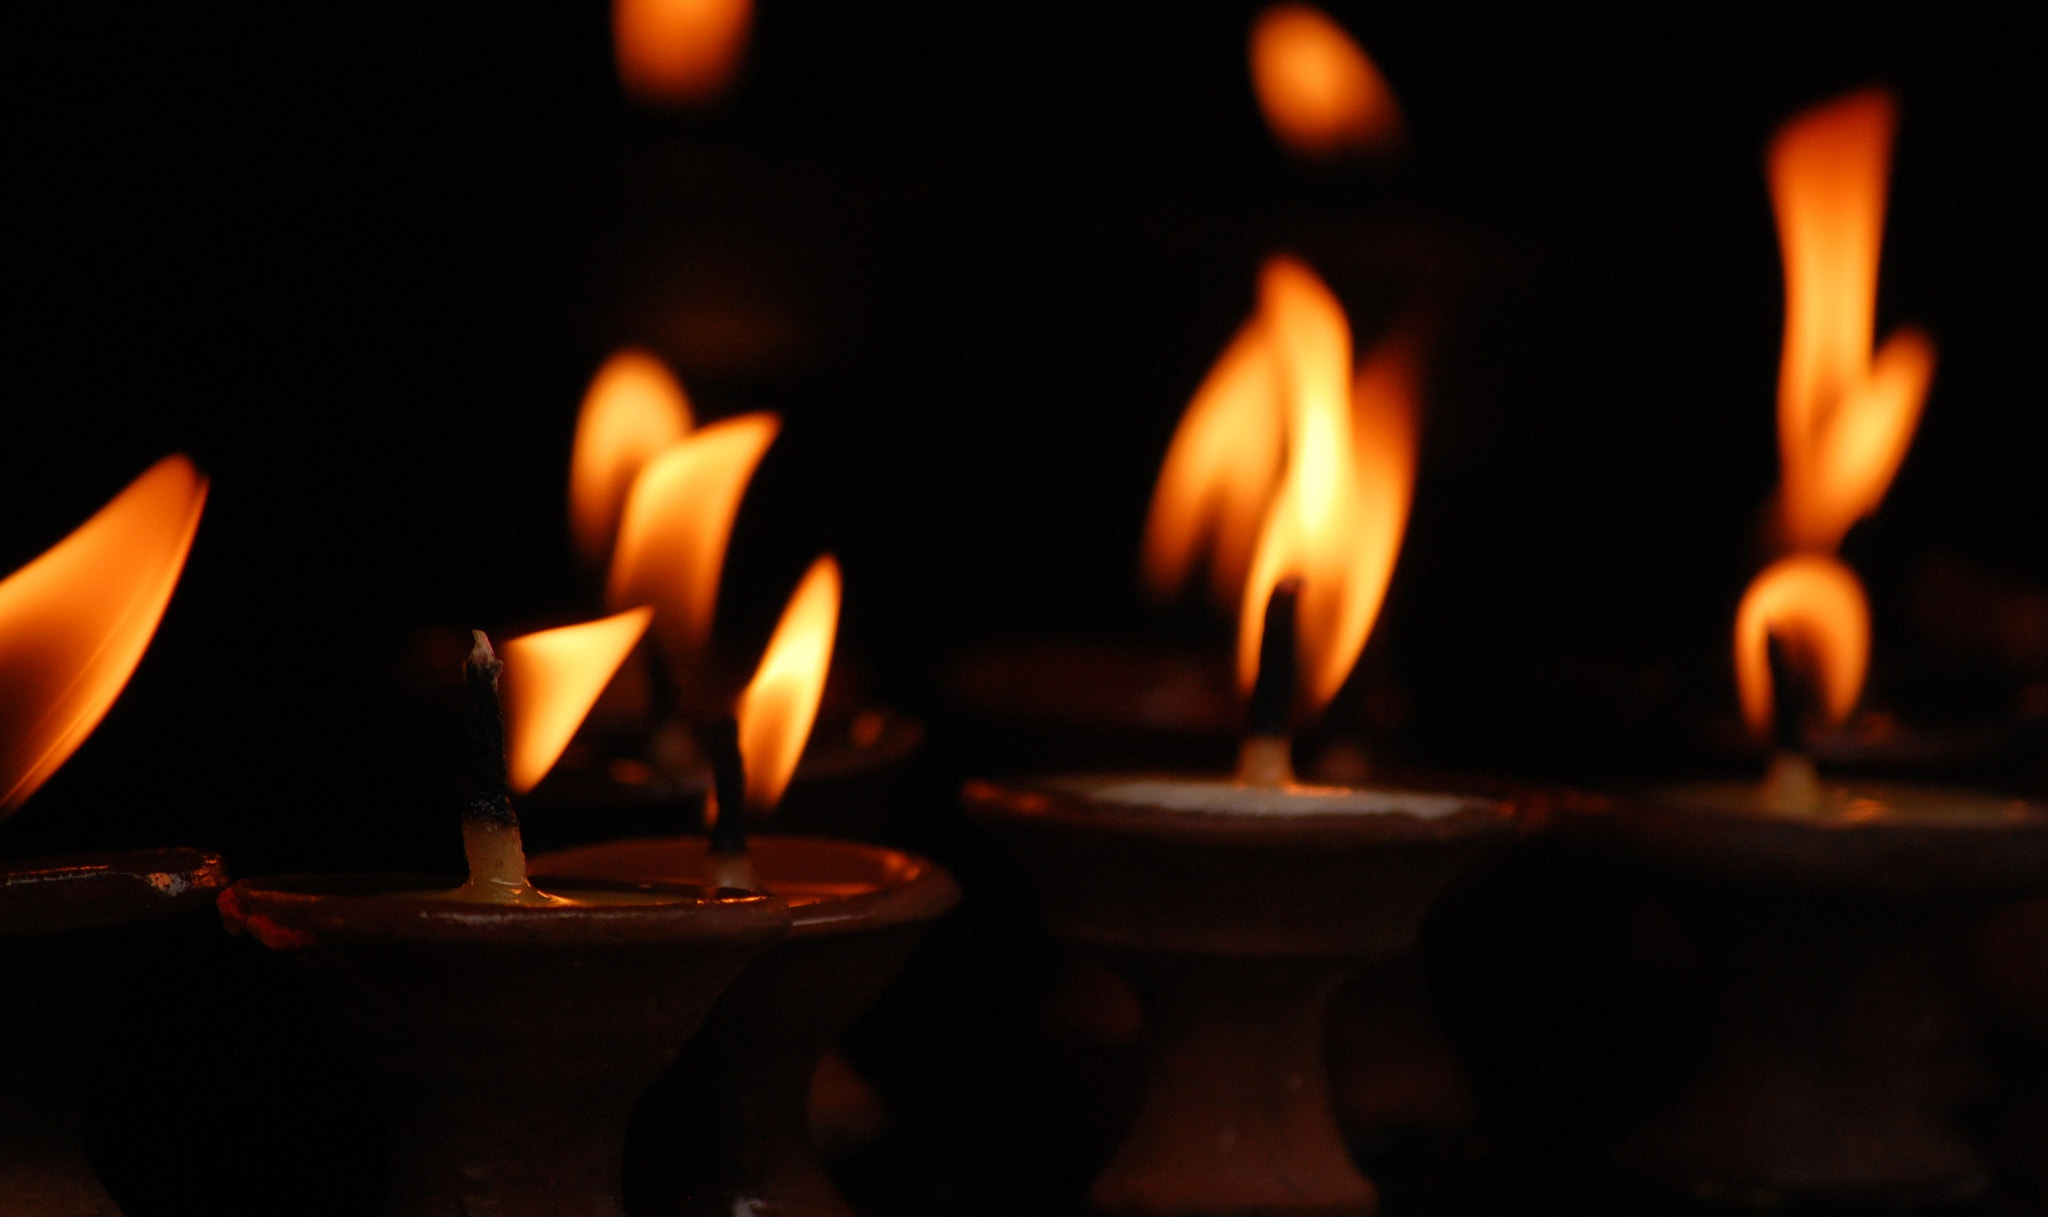 Photograph Candles by Laurien Lub on 500px